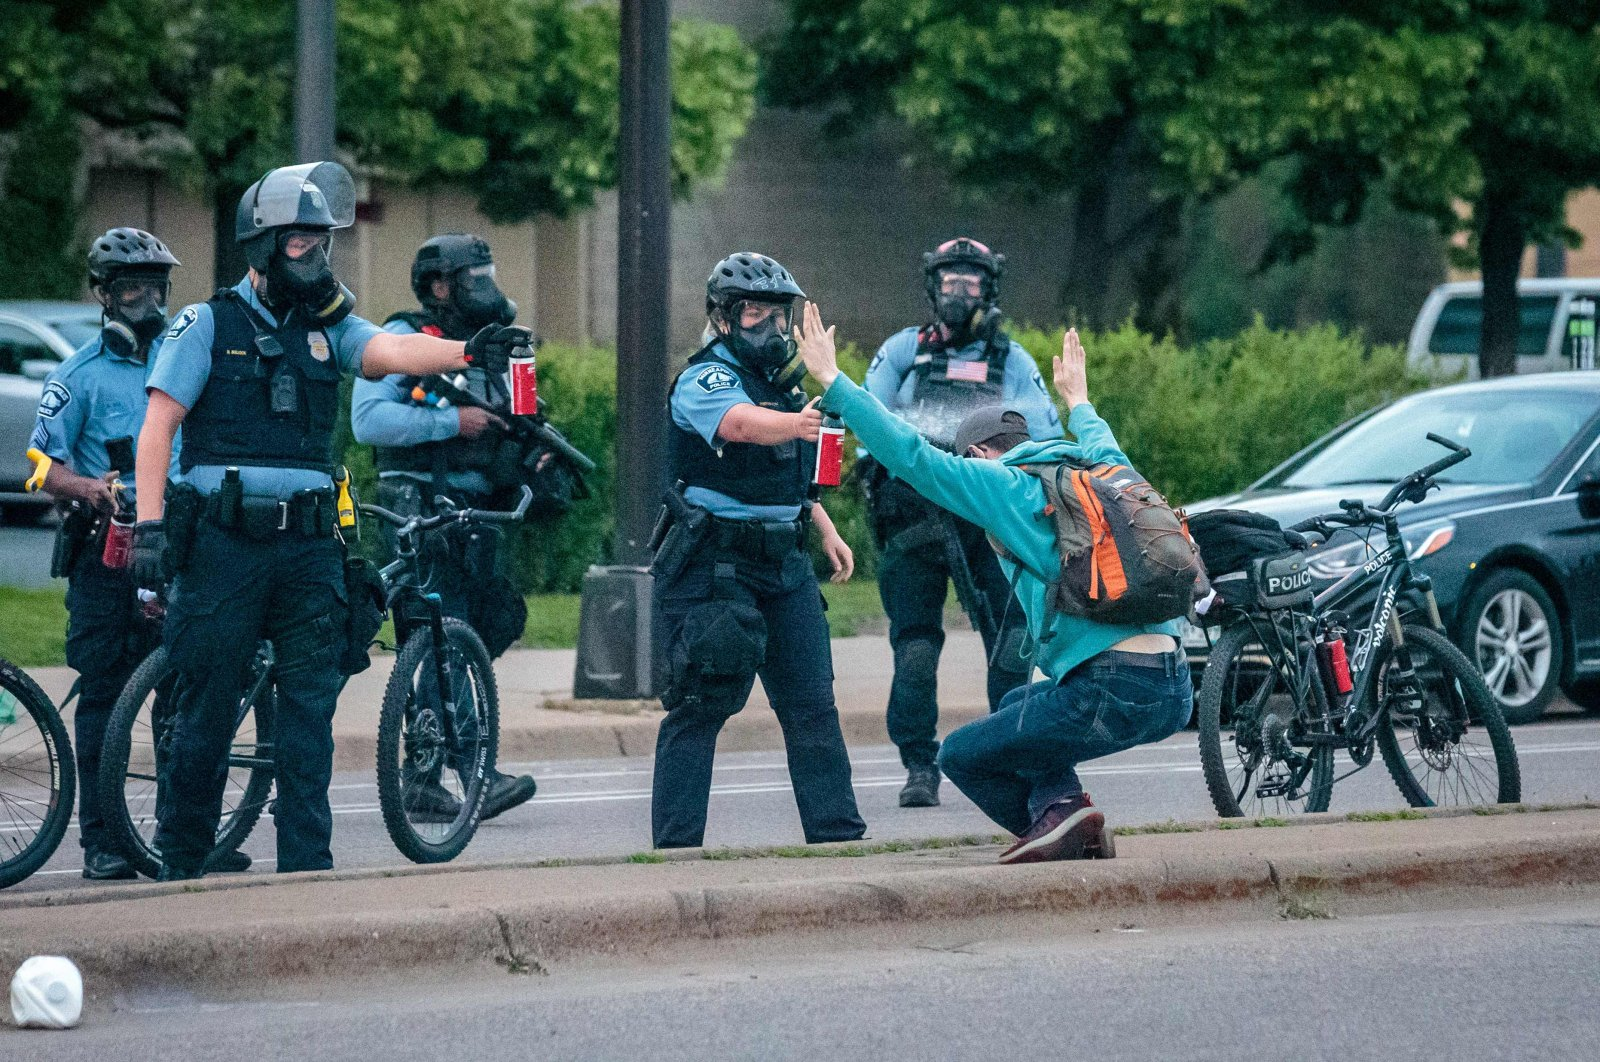 Demonstrator holds up his hands as he is sprayed with pepper spray by two Minneapolis Police officers in Minneapolis, Minnesota during a protest over the death of George Floyd, an unarmed black man who died while in police custody in Minneapolis, May 31, 2020. (AFP Photo)